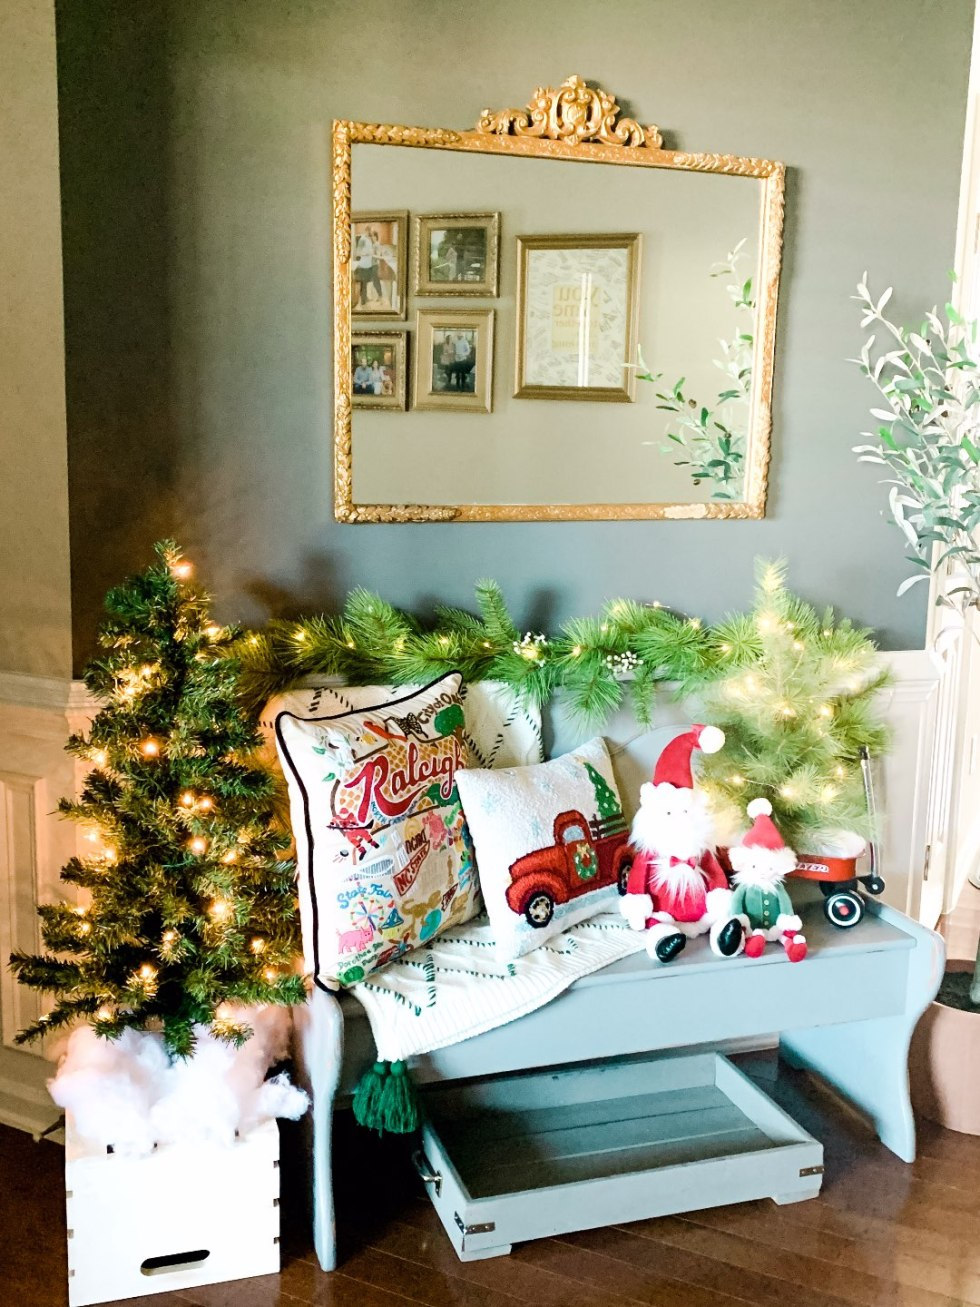 Holiday Home Decor Tour - I'm Fixin' To - @mbg0112 | Holiday Home Decor Tour by popular North Carolina life and style blog, I'm Fixin' To: image of a home foyer decorated with Bench & Mirror from The Cary Cottage, 3 Foot Pre-Lit Tree, Small Tree, Jelly Cat Santa, Jelly Cat Elf Hearth & Hand Garland, Catstudio Raleigh Pillow, and Embroidered Pillow.